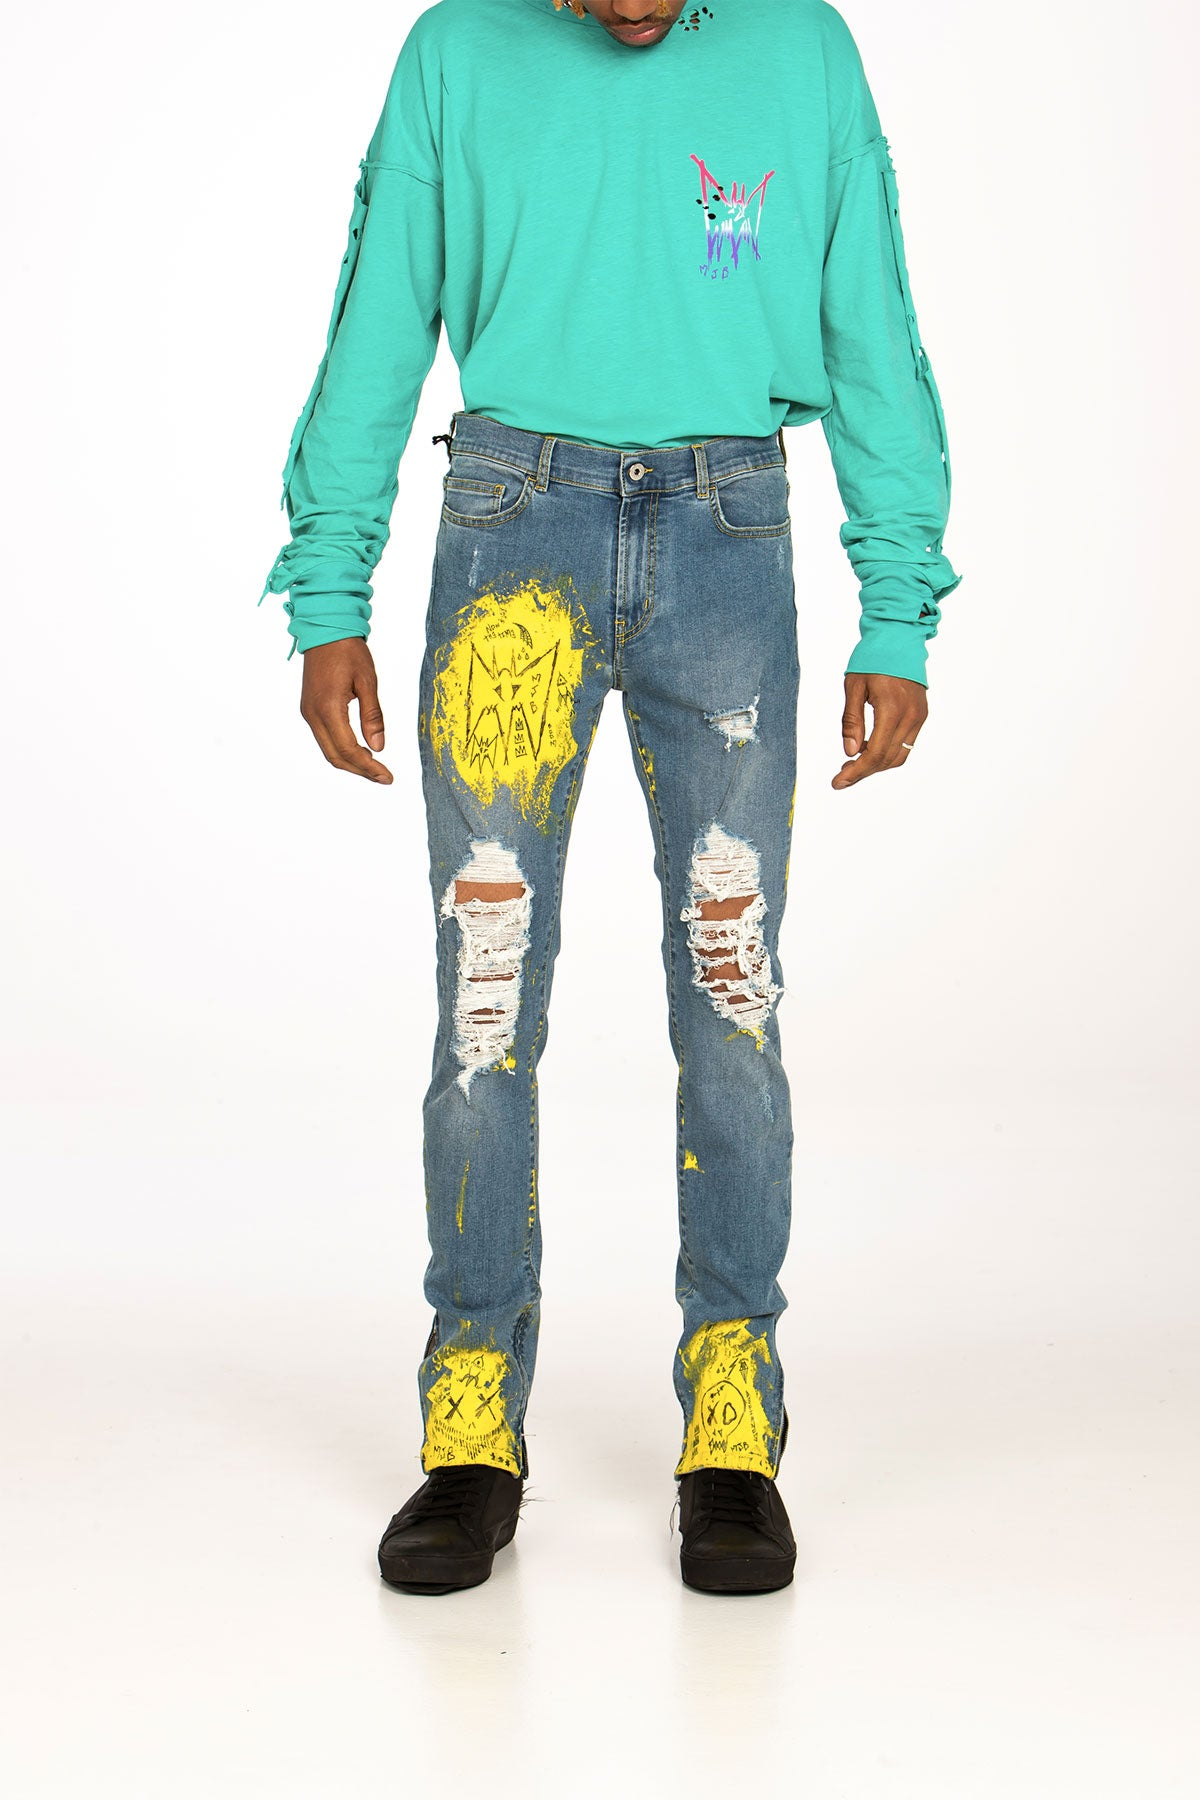 CRIXUS JEANS HAND PAINTED